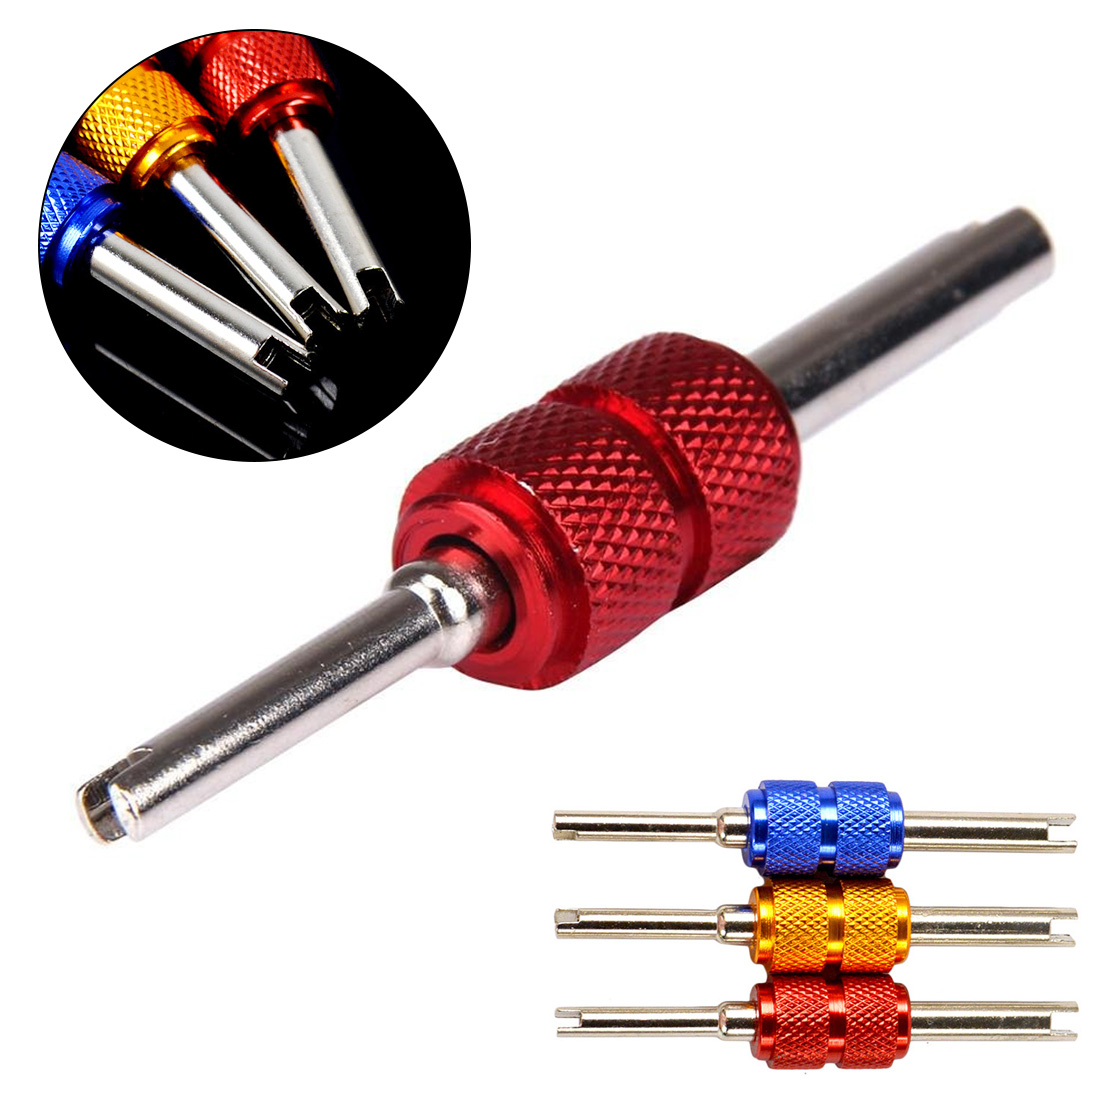 Two-purpose Double-headed Car Air-conditioning Valve Core Key Threading Door Core Tool Tire Valve Core Disassembly Wrench